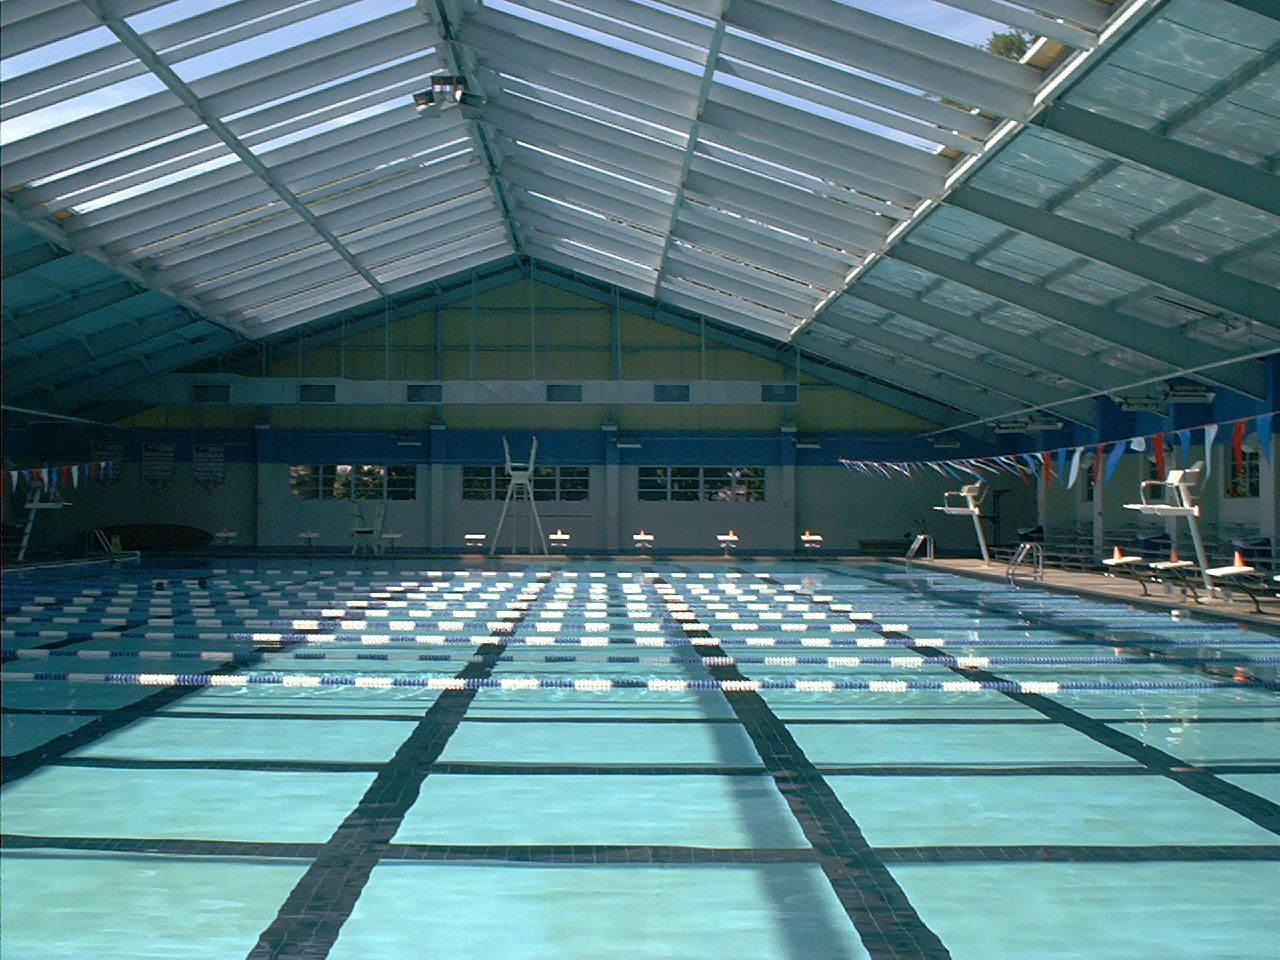 The biloxi natatorium is an olympic size pool 50 meters long by 25 yards wide with a shallow for How deep is a olympic swimming pool